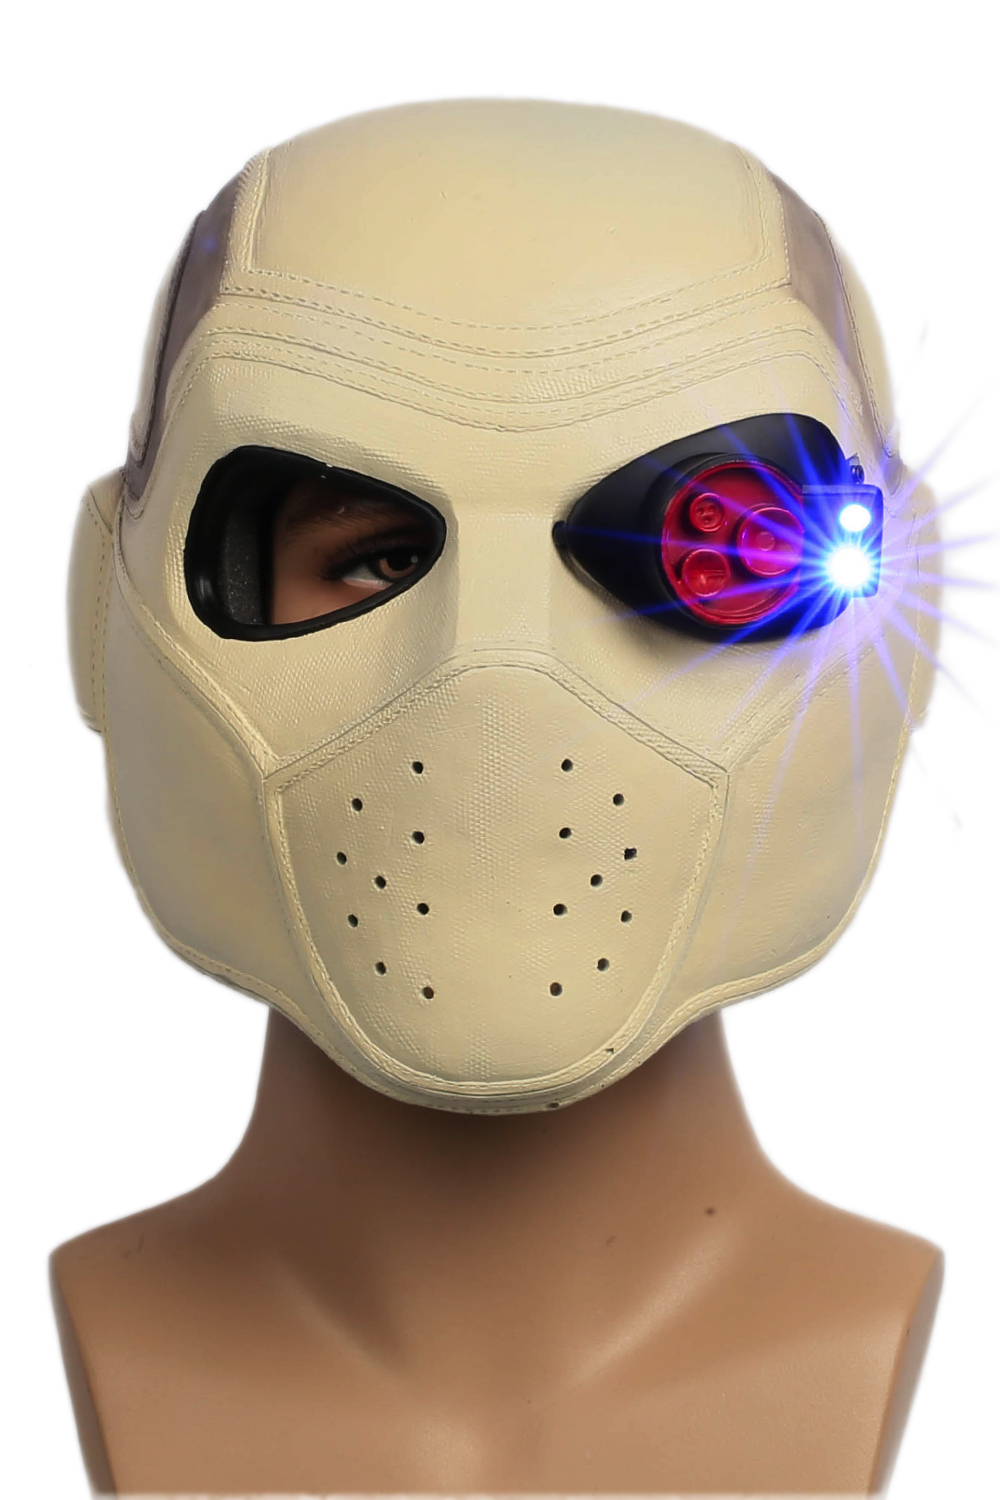 Deadshot Helmet Mask Suicide Squad 2016 New Movie Cosplay Props Full Head Resin Helmet XCOSER for Halloween Parties AdultОдежда и ак�е��уары<br><br><br>Aliexpress